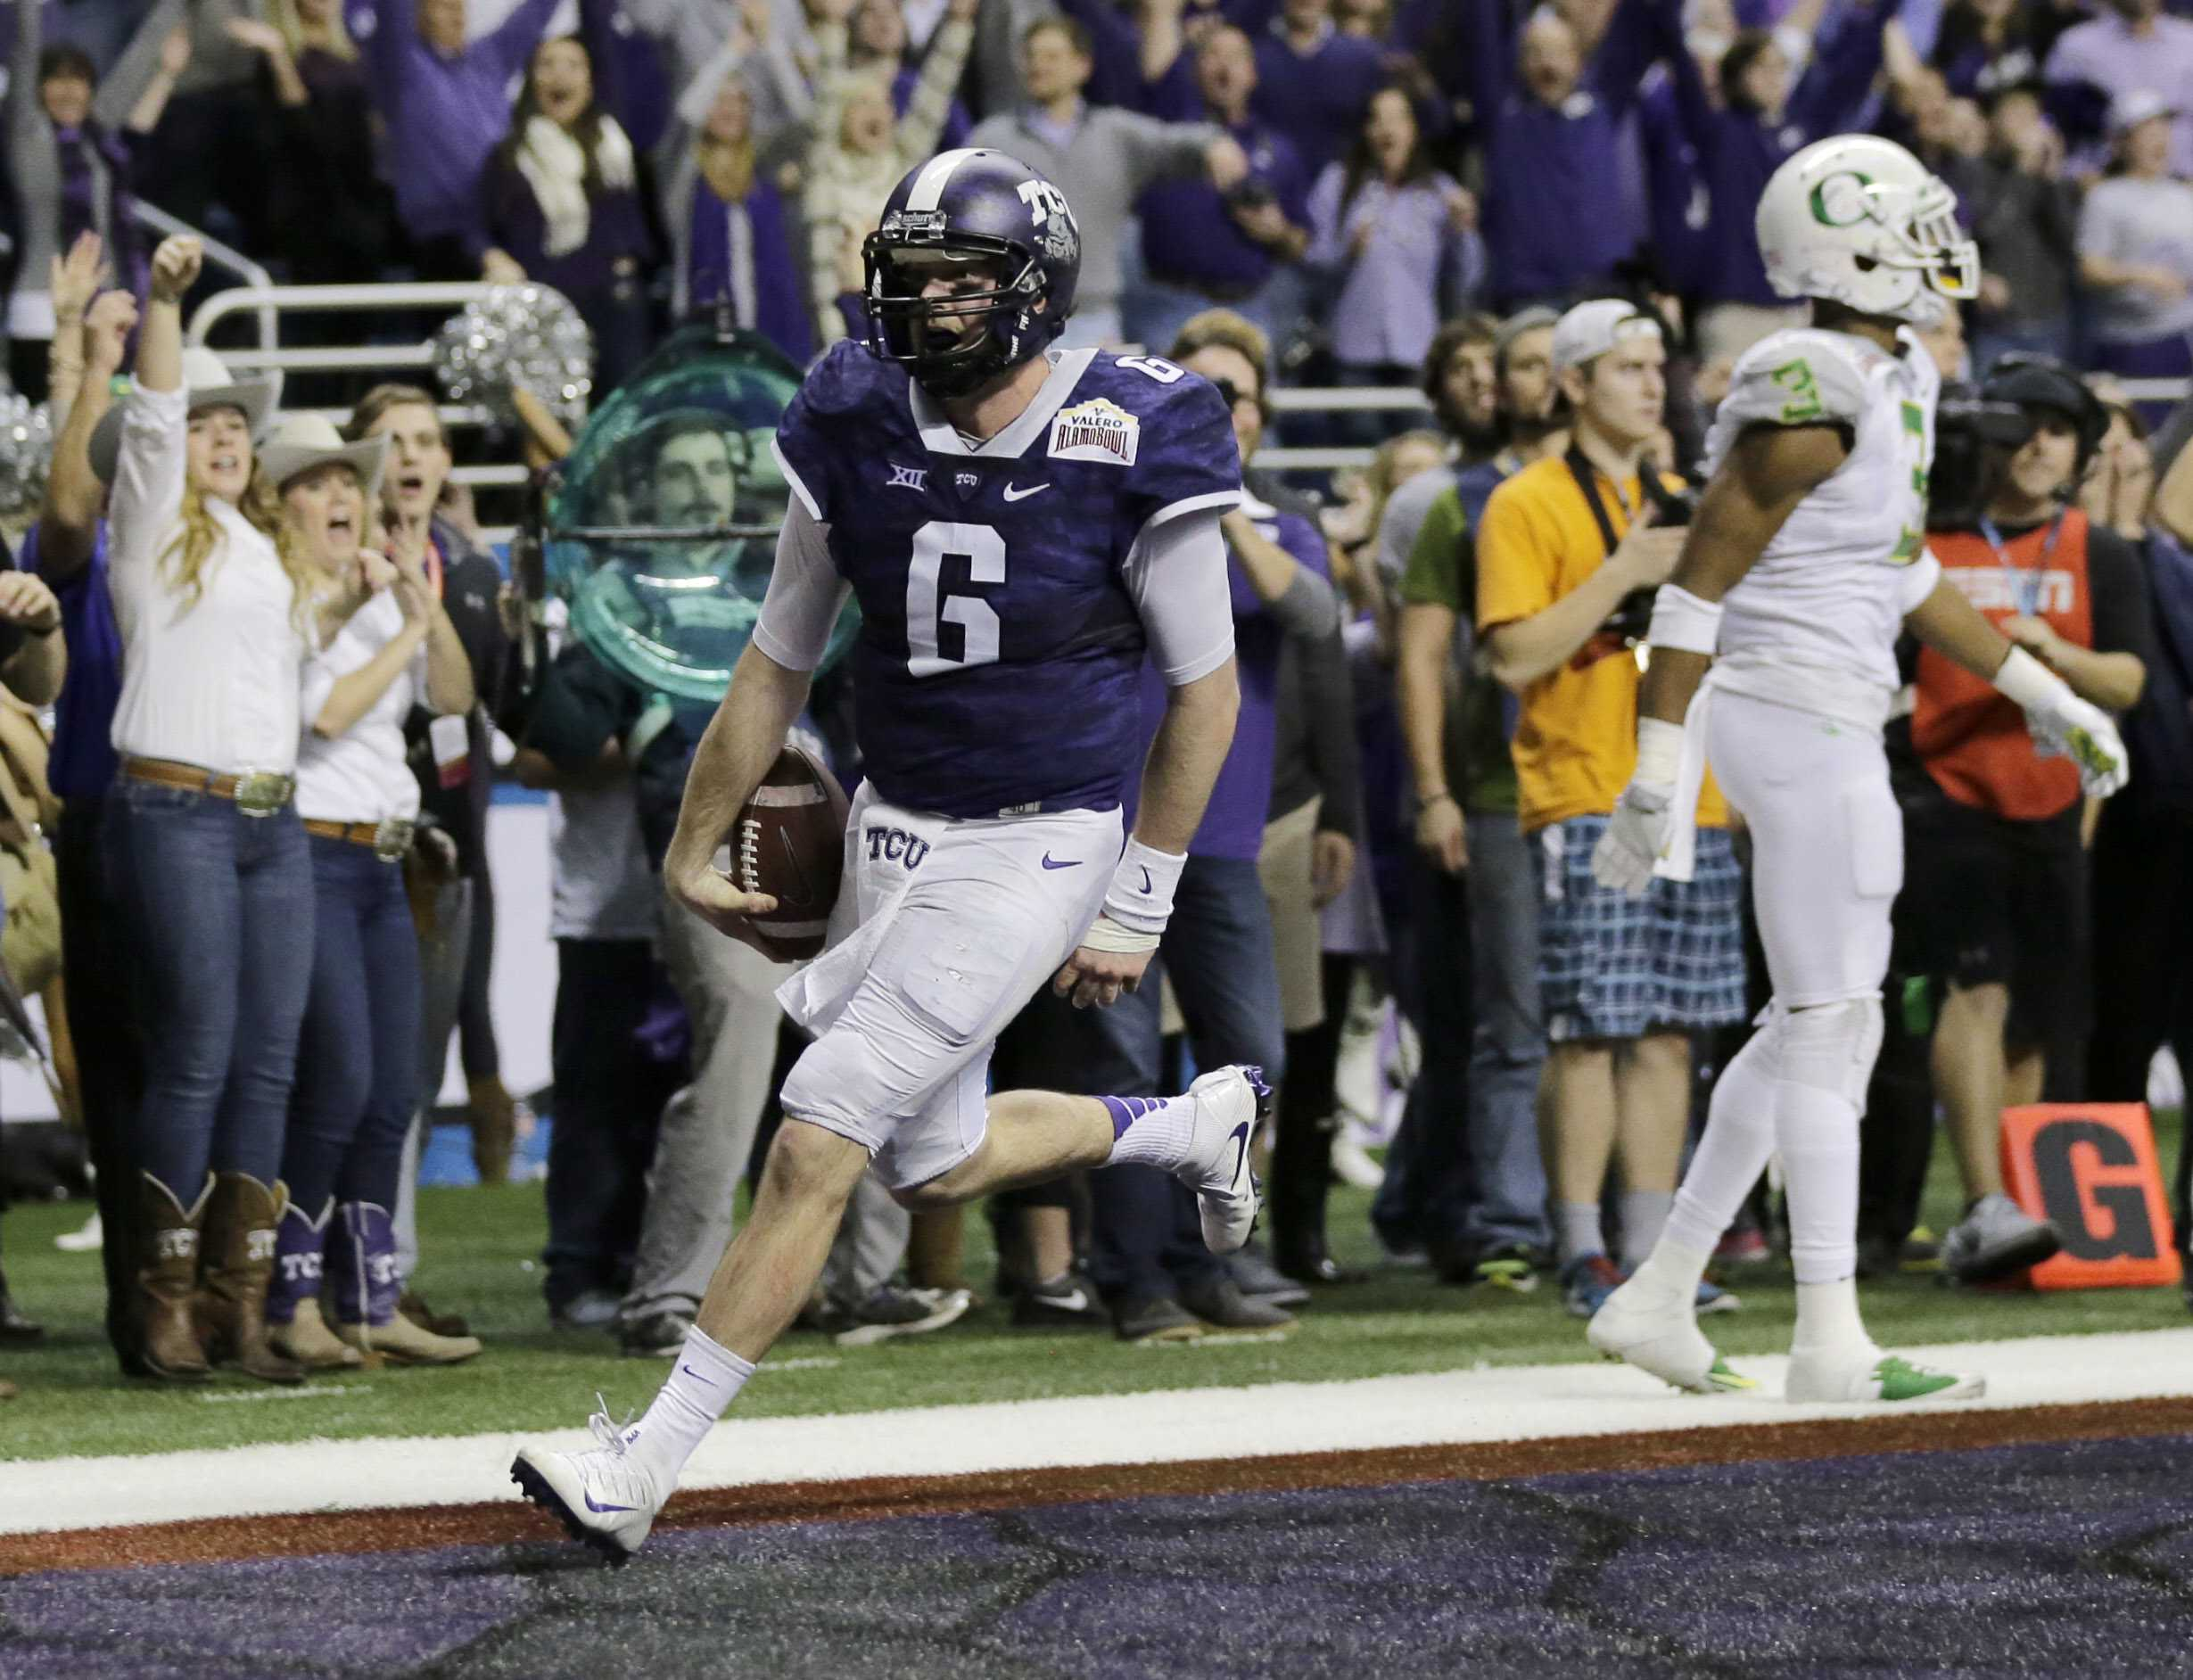 Welcome Back: TCU returns to the Alamo Bowl to face Stanford